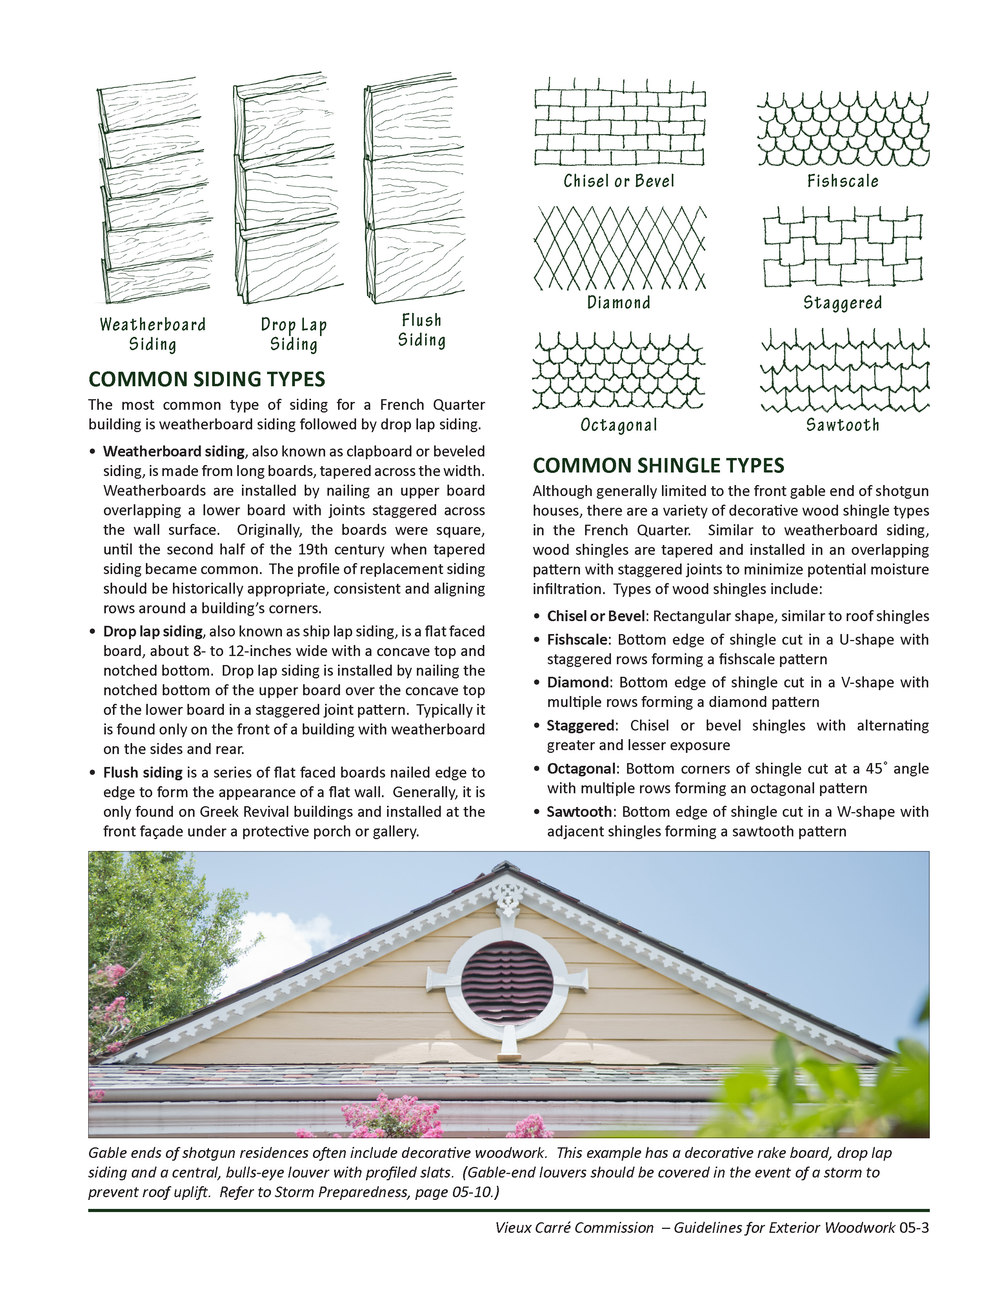 VCC-Book-Entire Guidelines_2015-Woodwork_Page_2.jpg